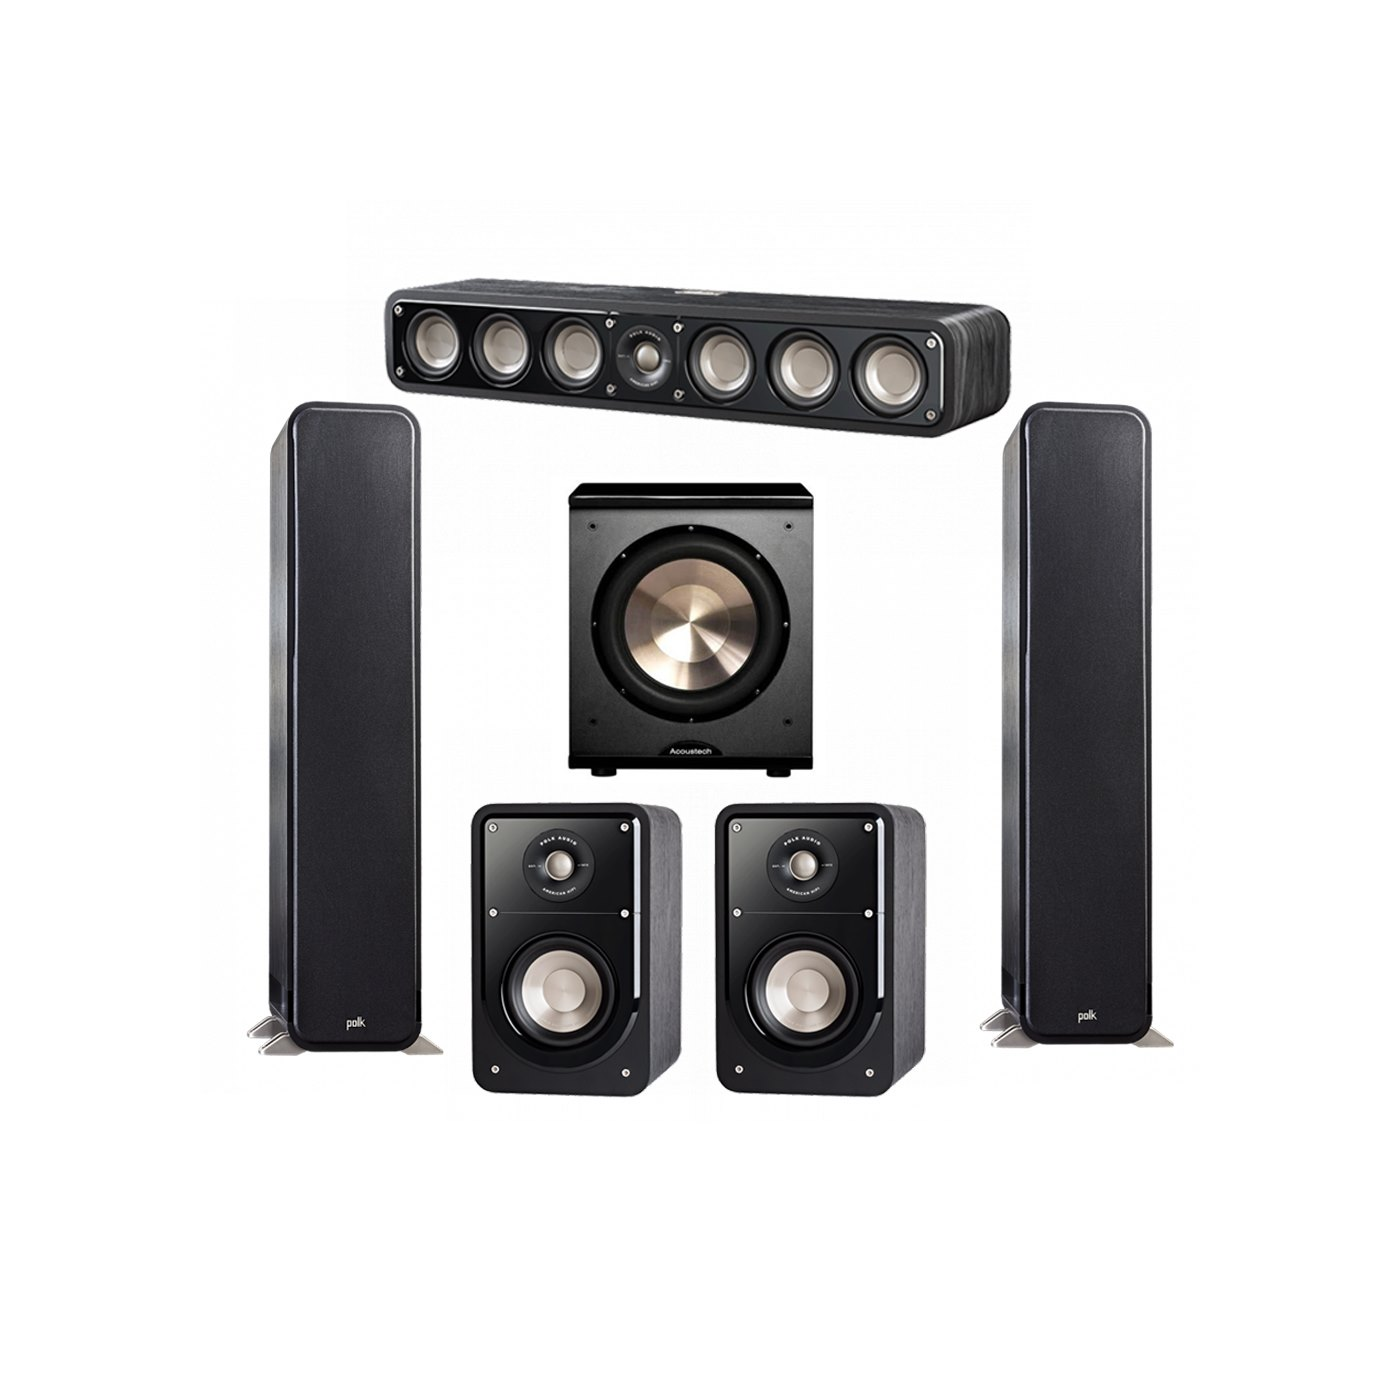 Polk Audio Signature 5.1 System with 2 S55 Tower Speaker, 1 Polk S35 Center Speaker, 2 Polk S15 Bookshelf Speaker, 1 BIC/Acoustech Platinum Series PL-200 Subwoofer